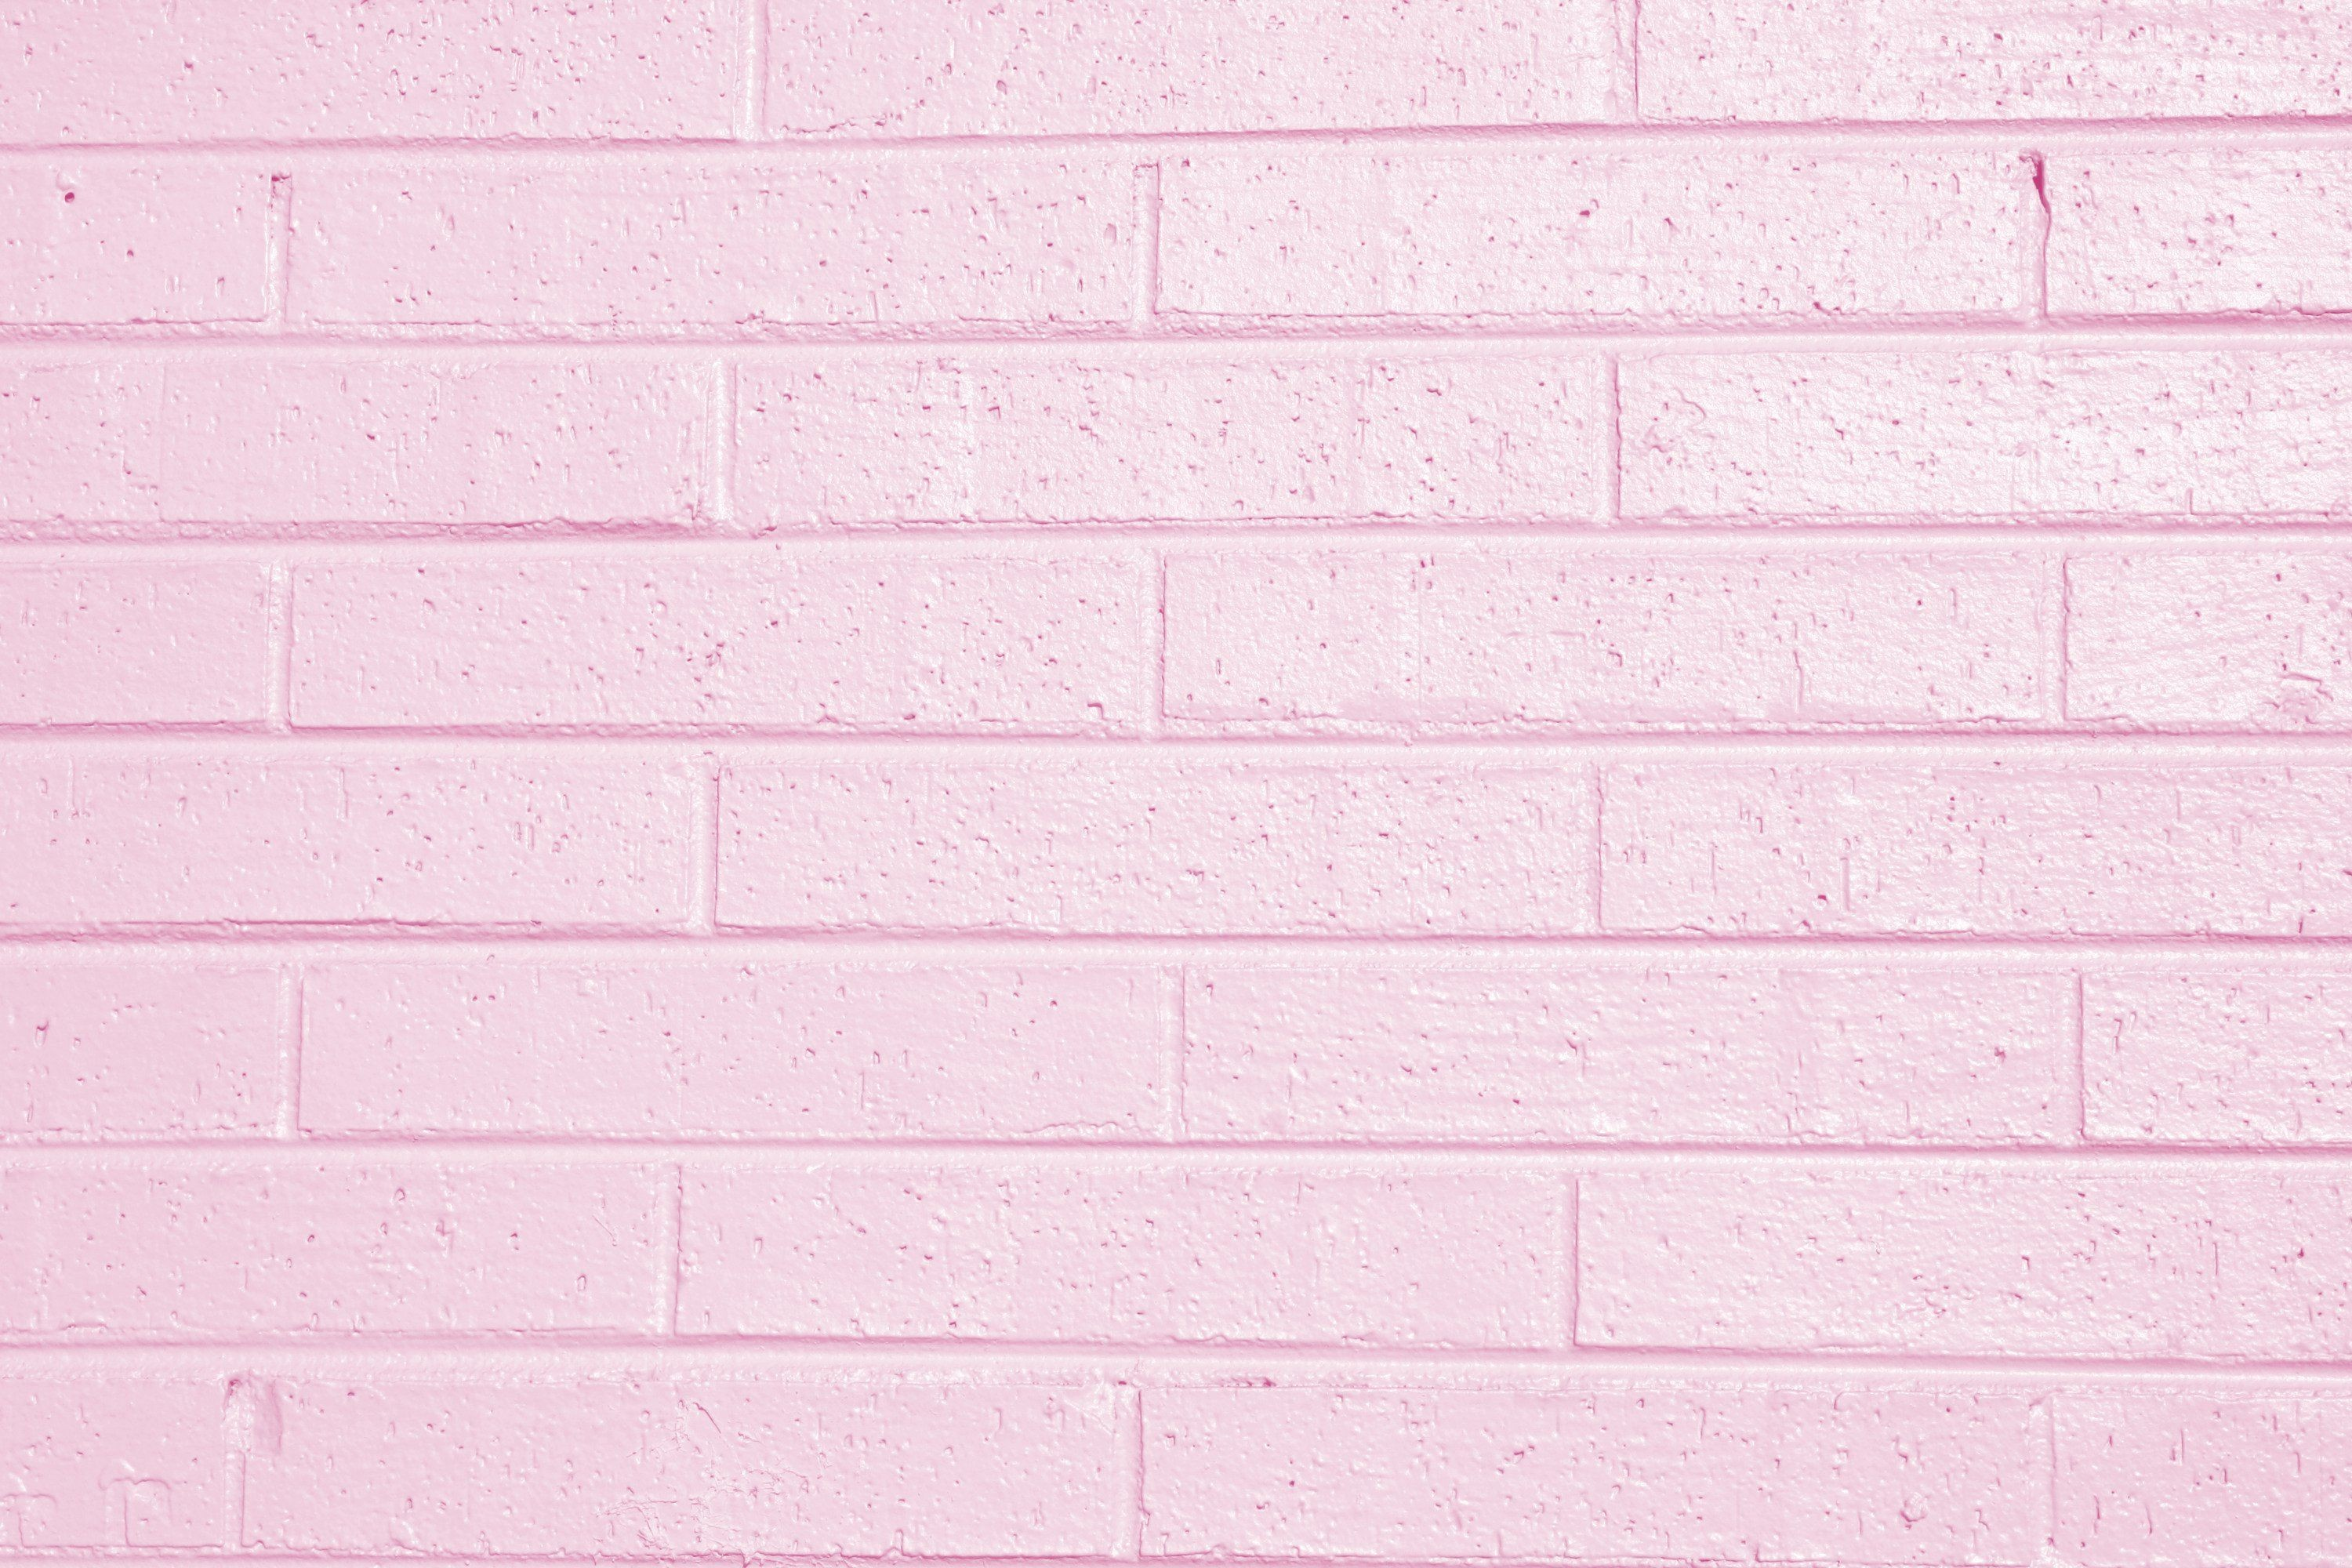 Pastel Pink Background Download Free Cool Hd Backgrounds For Desktop Computers And Smartphones In Any Resolution Desktop Android Iphone Ipad 1920x1080 480x800 720x1280 1920x1200 Etc Wallpapertag